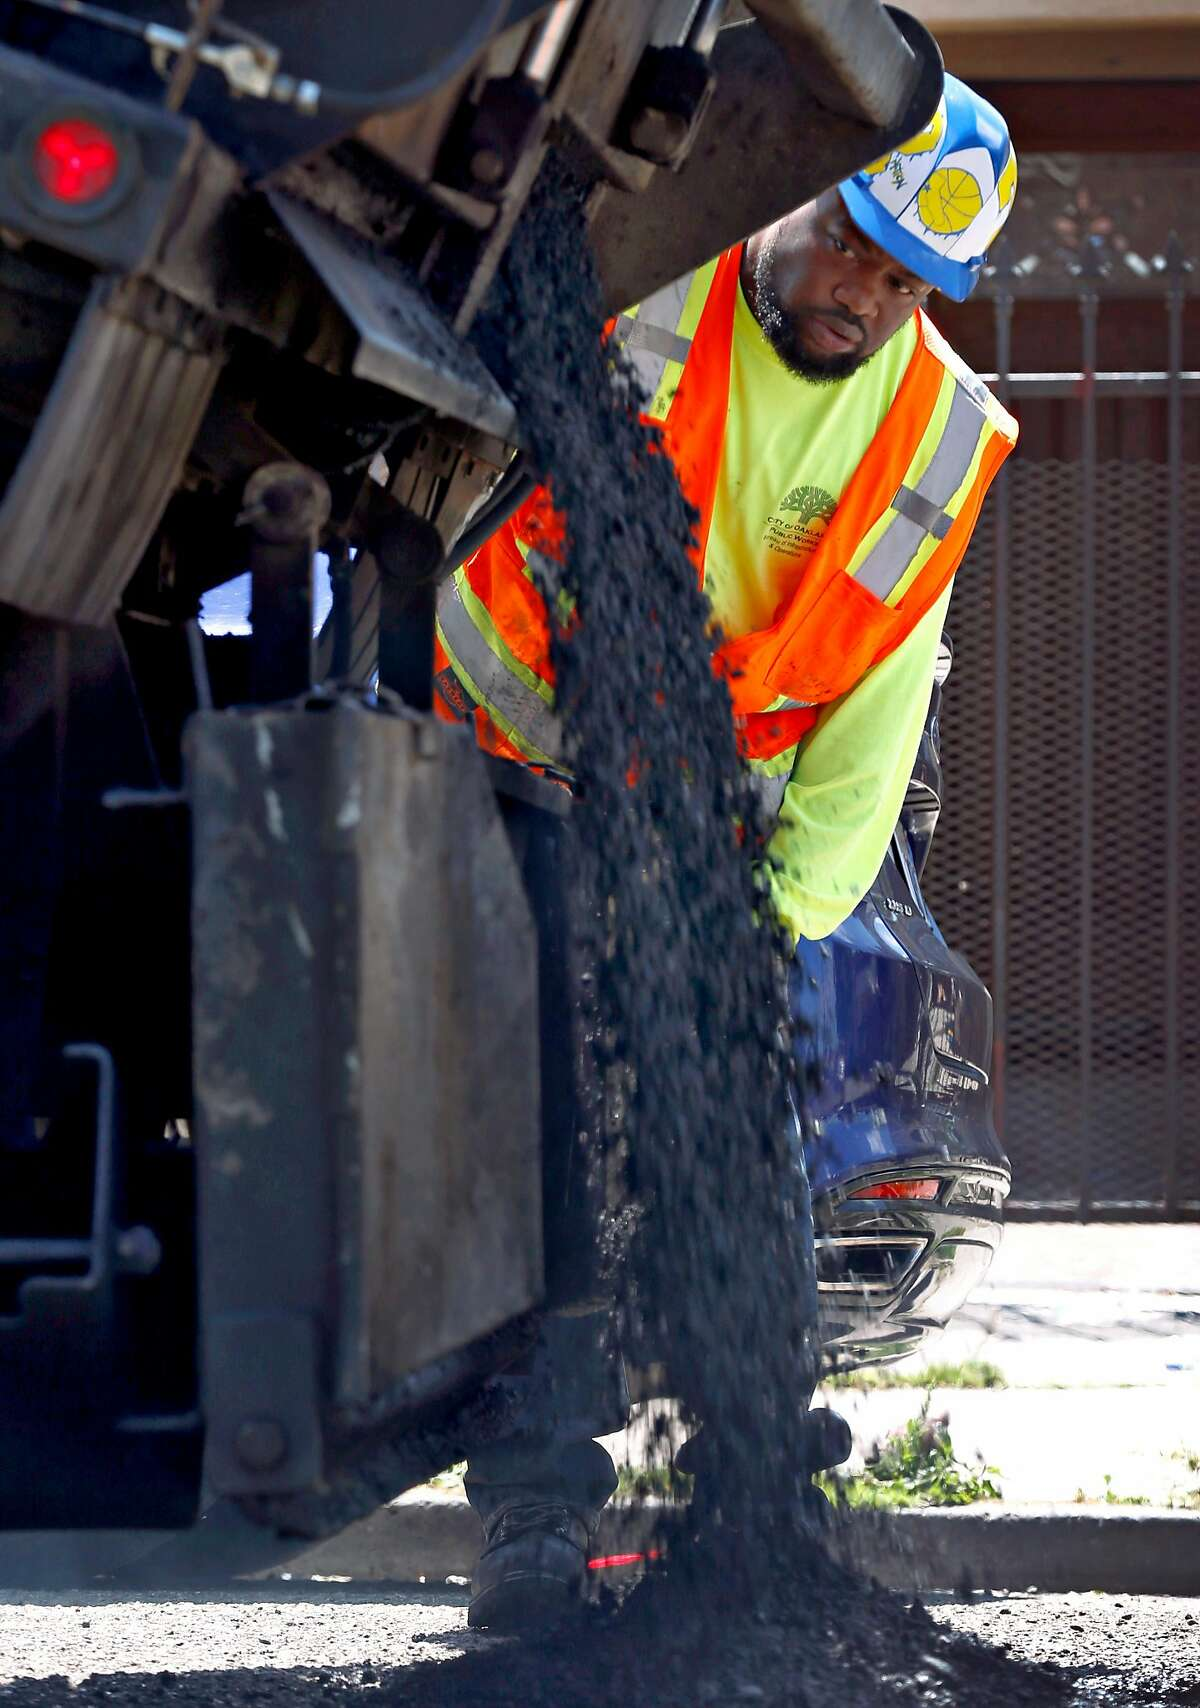 David Randolph pours asphalt onto the road as a maintenance crew from the Streets and Sidewalks department repairs potholes on 81st Avenue east of International Boulevard in Oakland, Calif. on Tuesday, May 28, 2019. Residents on the block said the potholes have been a problem for two years.